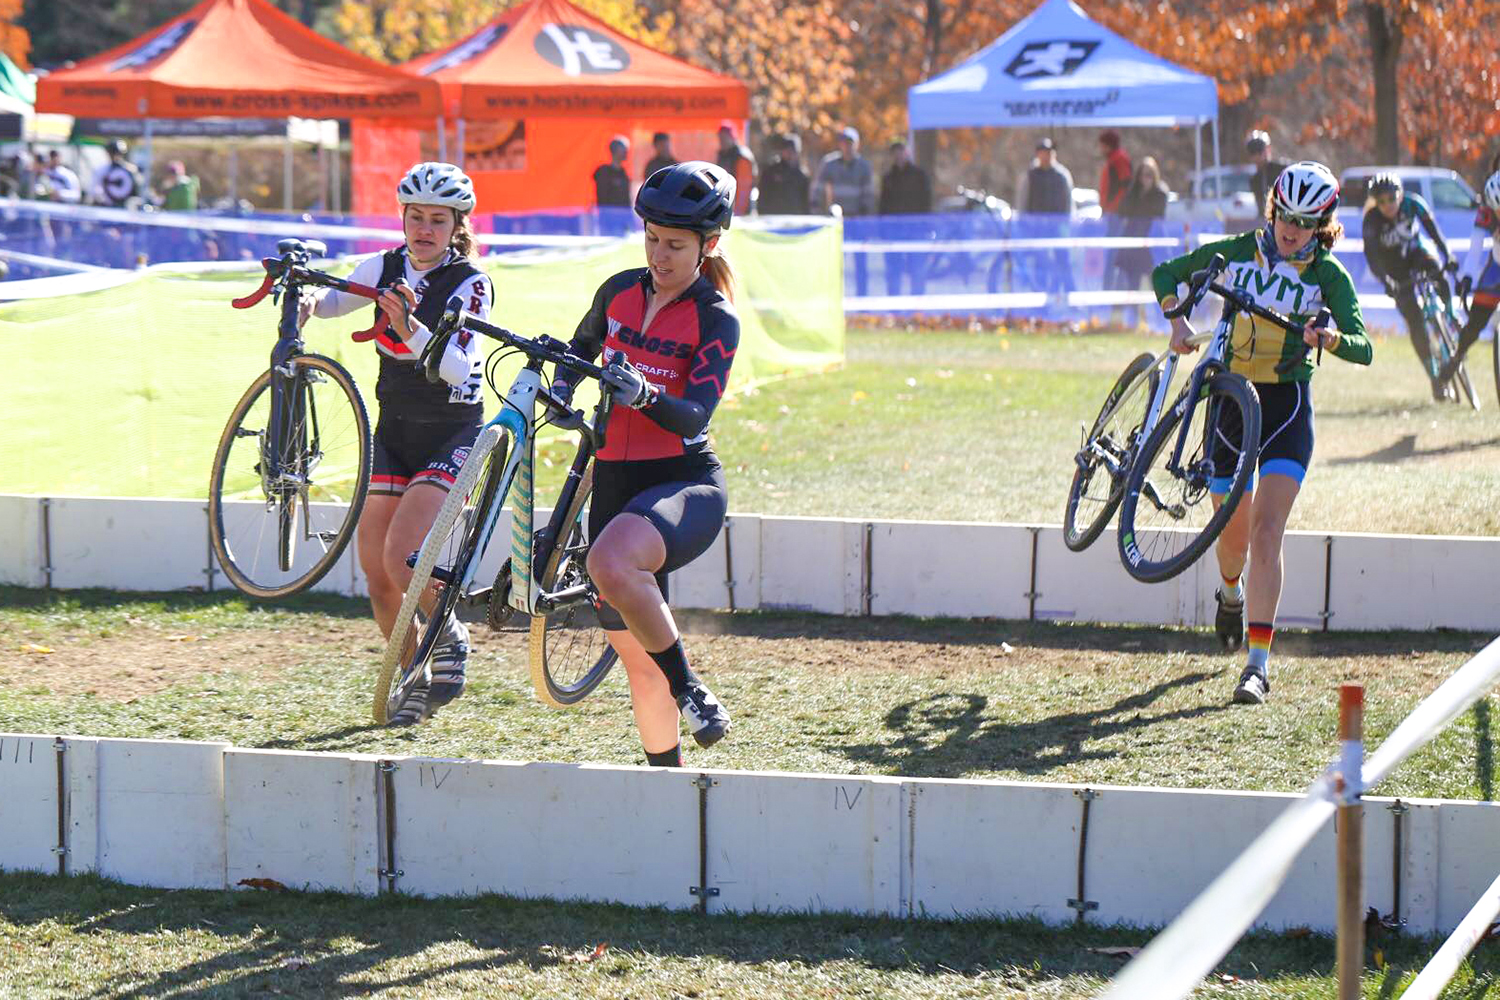 Author Shylah Weber negotiating the barriers at last year's Cycle-Smart International Cyclocross Race in Northampton, Mass.   NYCROSS